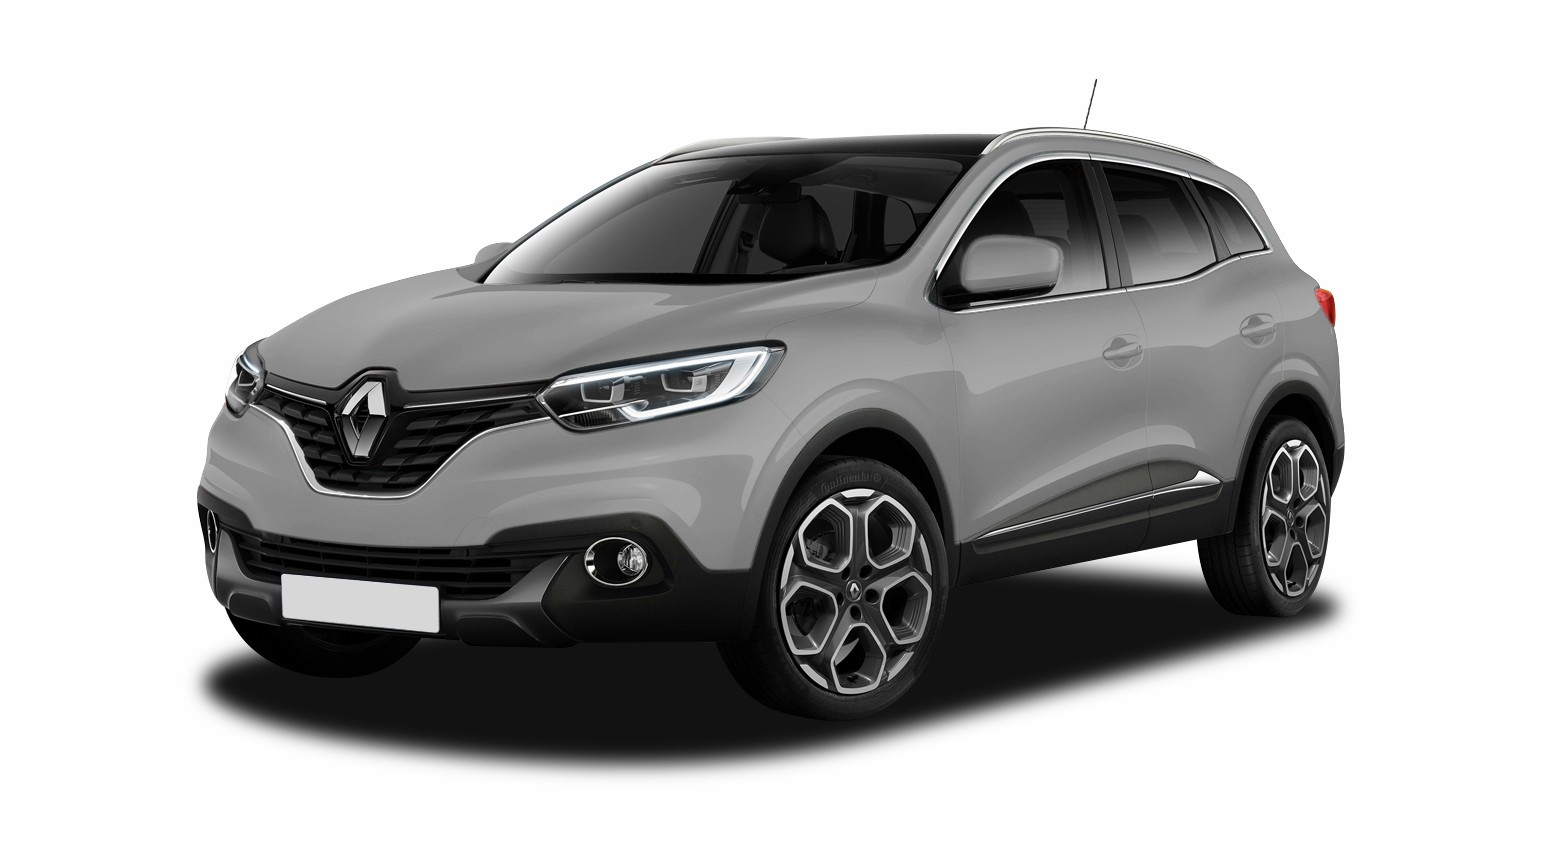 renault kadjar 4x2 et suv 5 portes diesel 1 6 dci 130 bo te manuelle finition intens. Black Bedroom Furniture Sets. Home Design Ideas